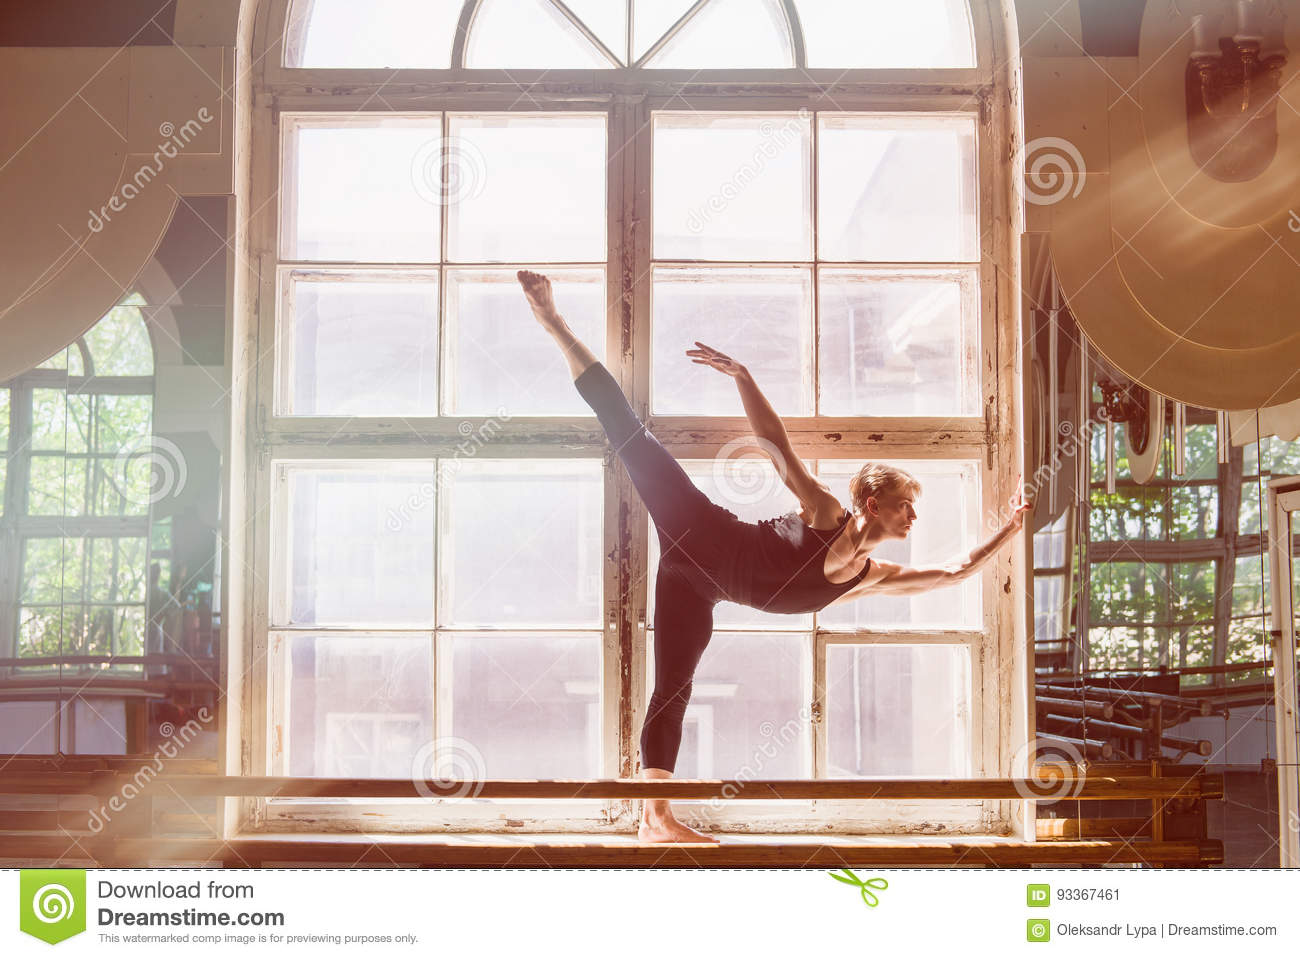 Male ballet dancer is dancing in front of a window